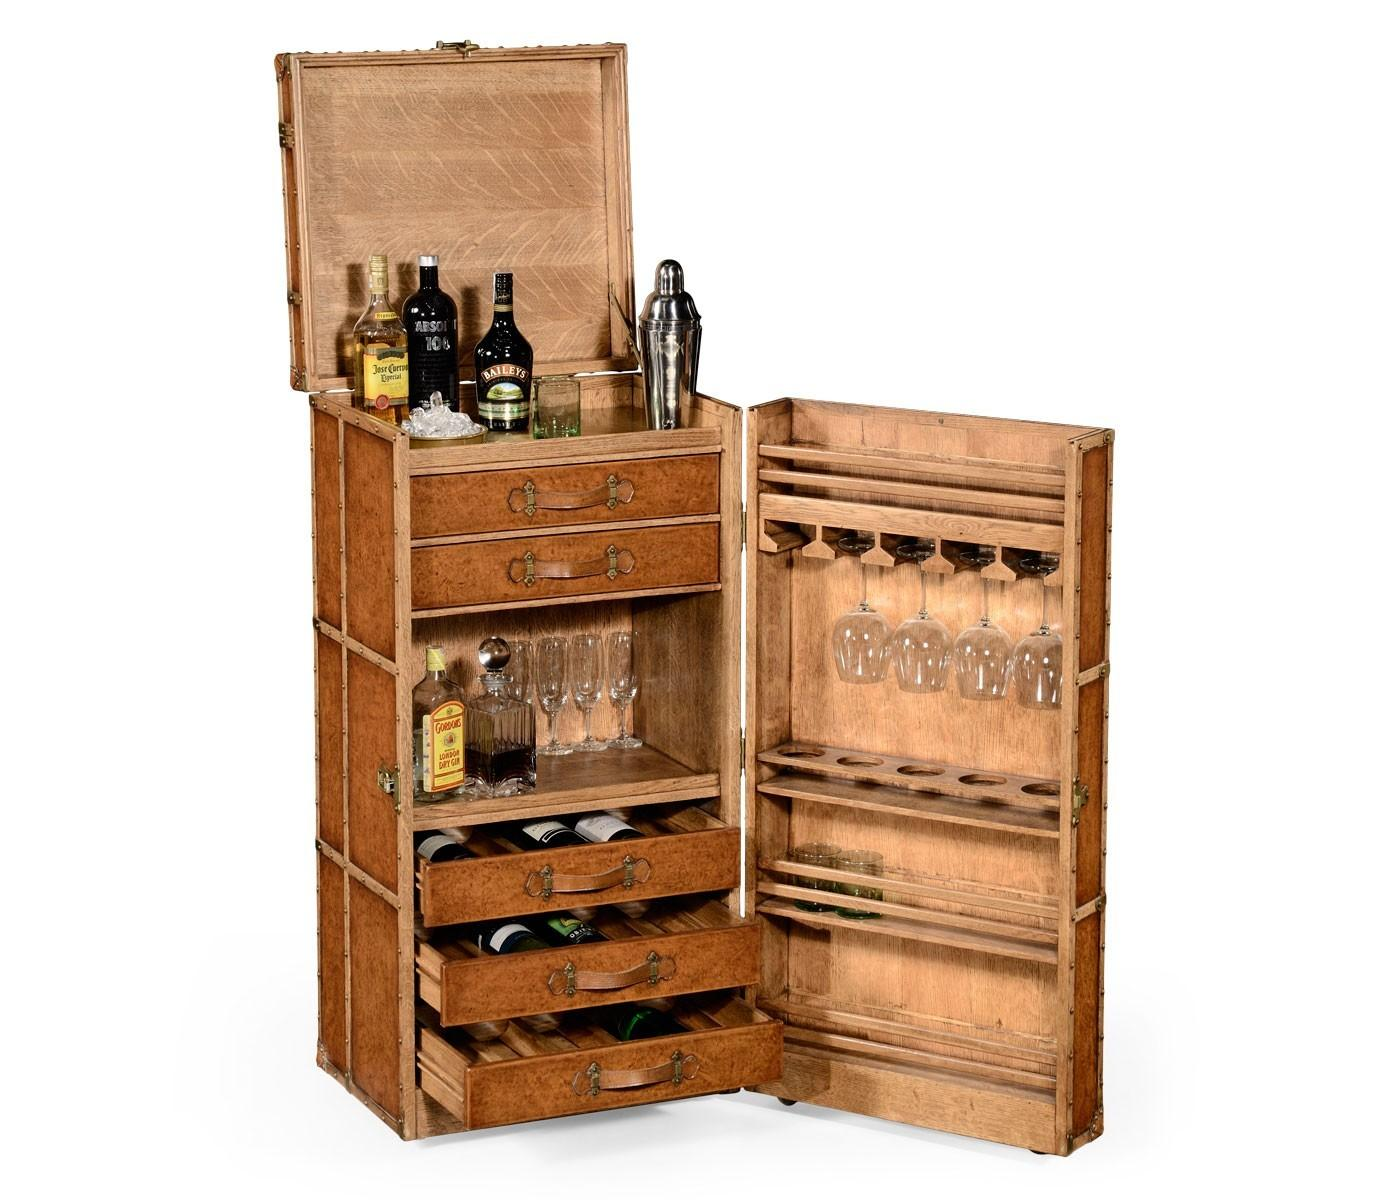 Jonathan Charles Travel Trunk Style Wine Cocktail